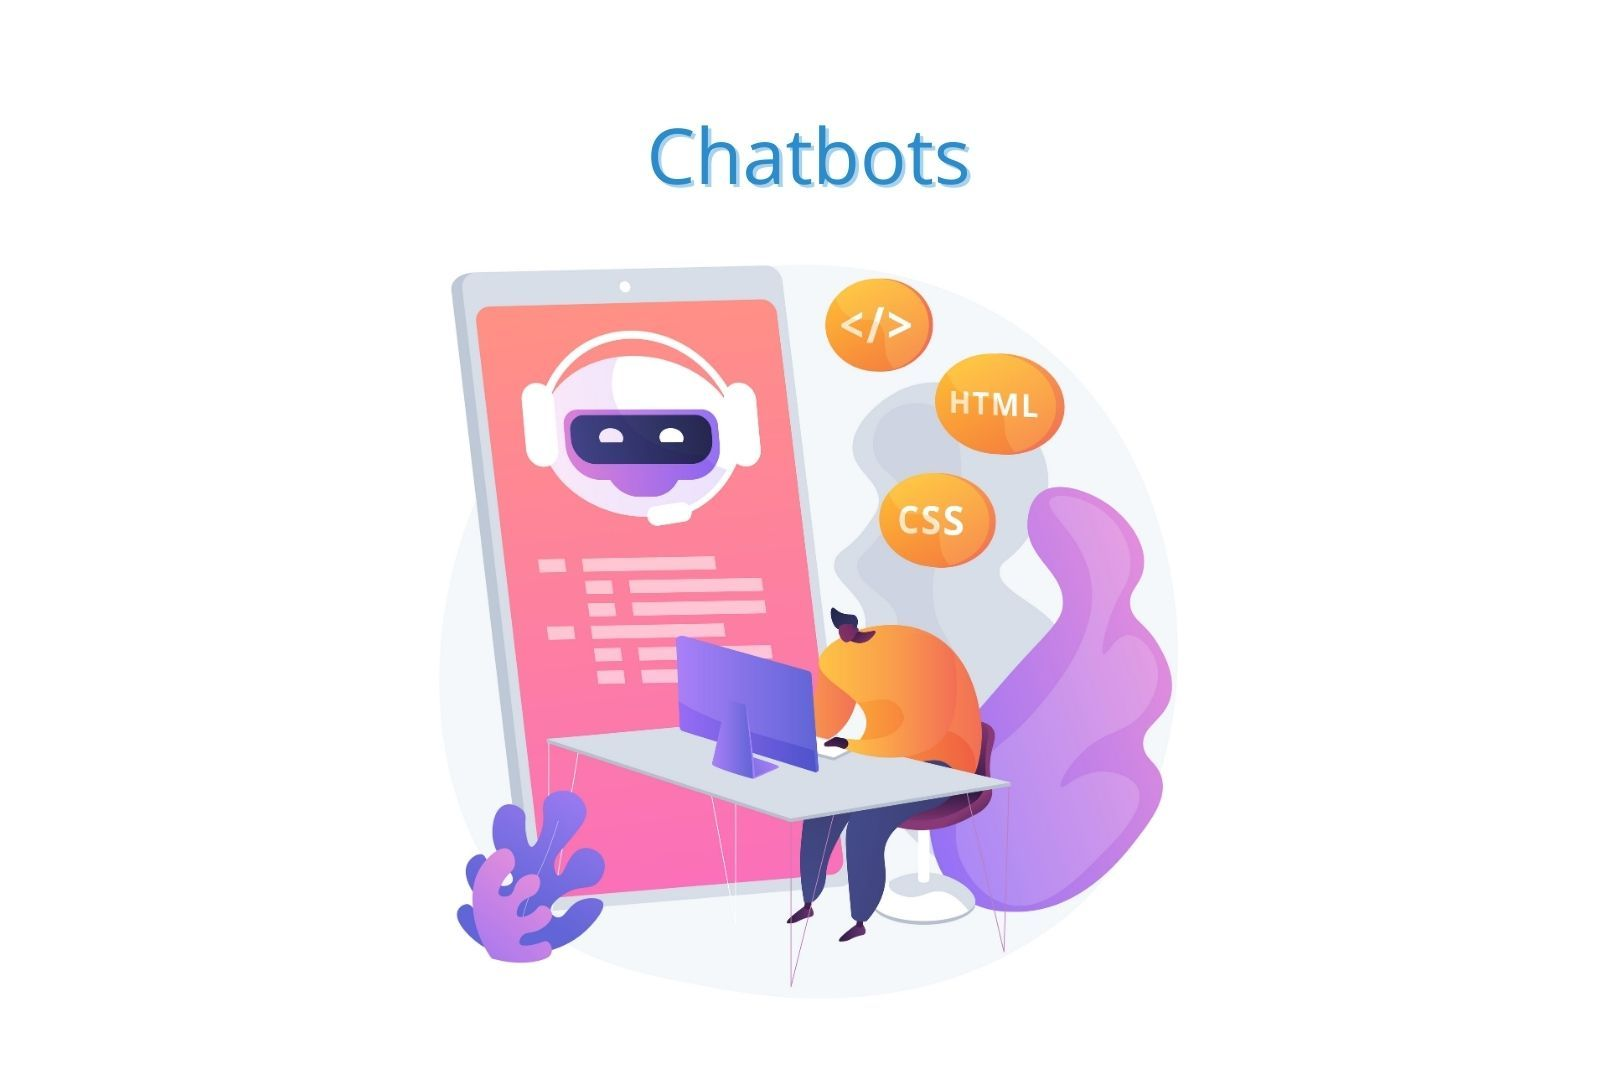 Popularity of chatbots